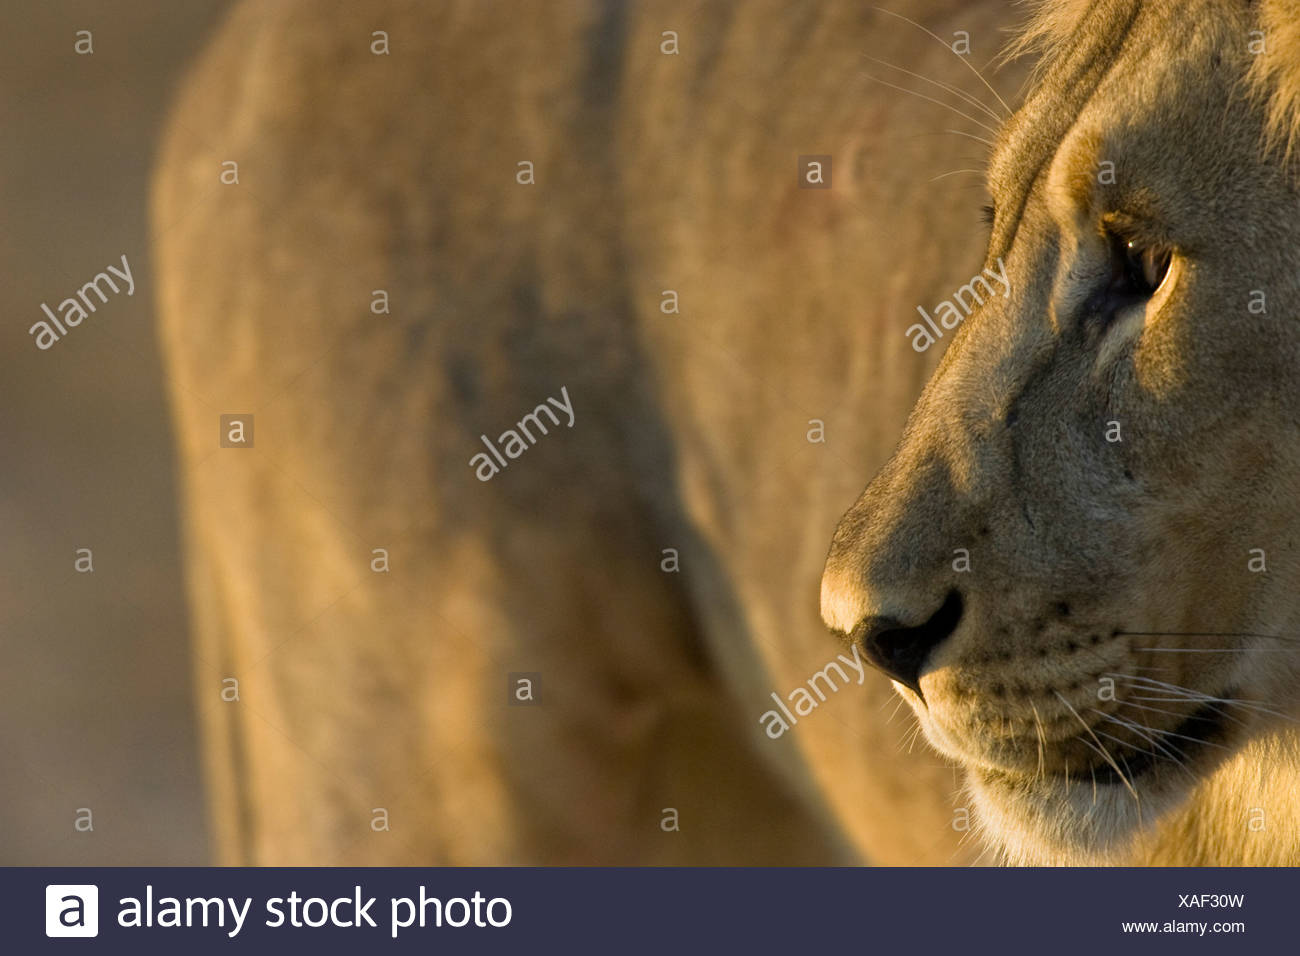 Lion portrait, Etosha National Park, Namibie Photo Stock